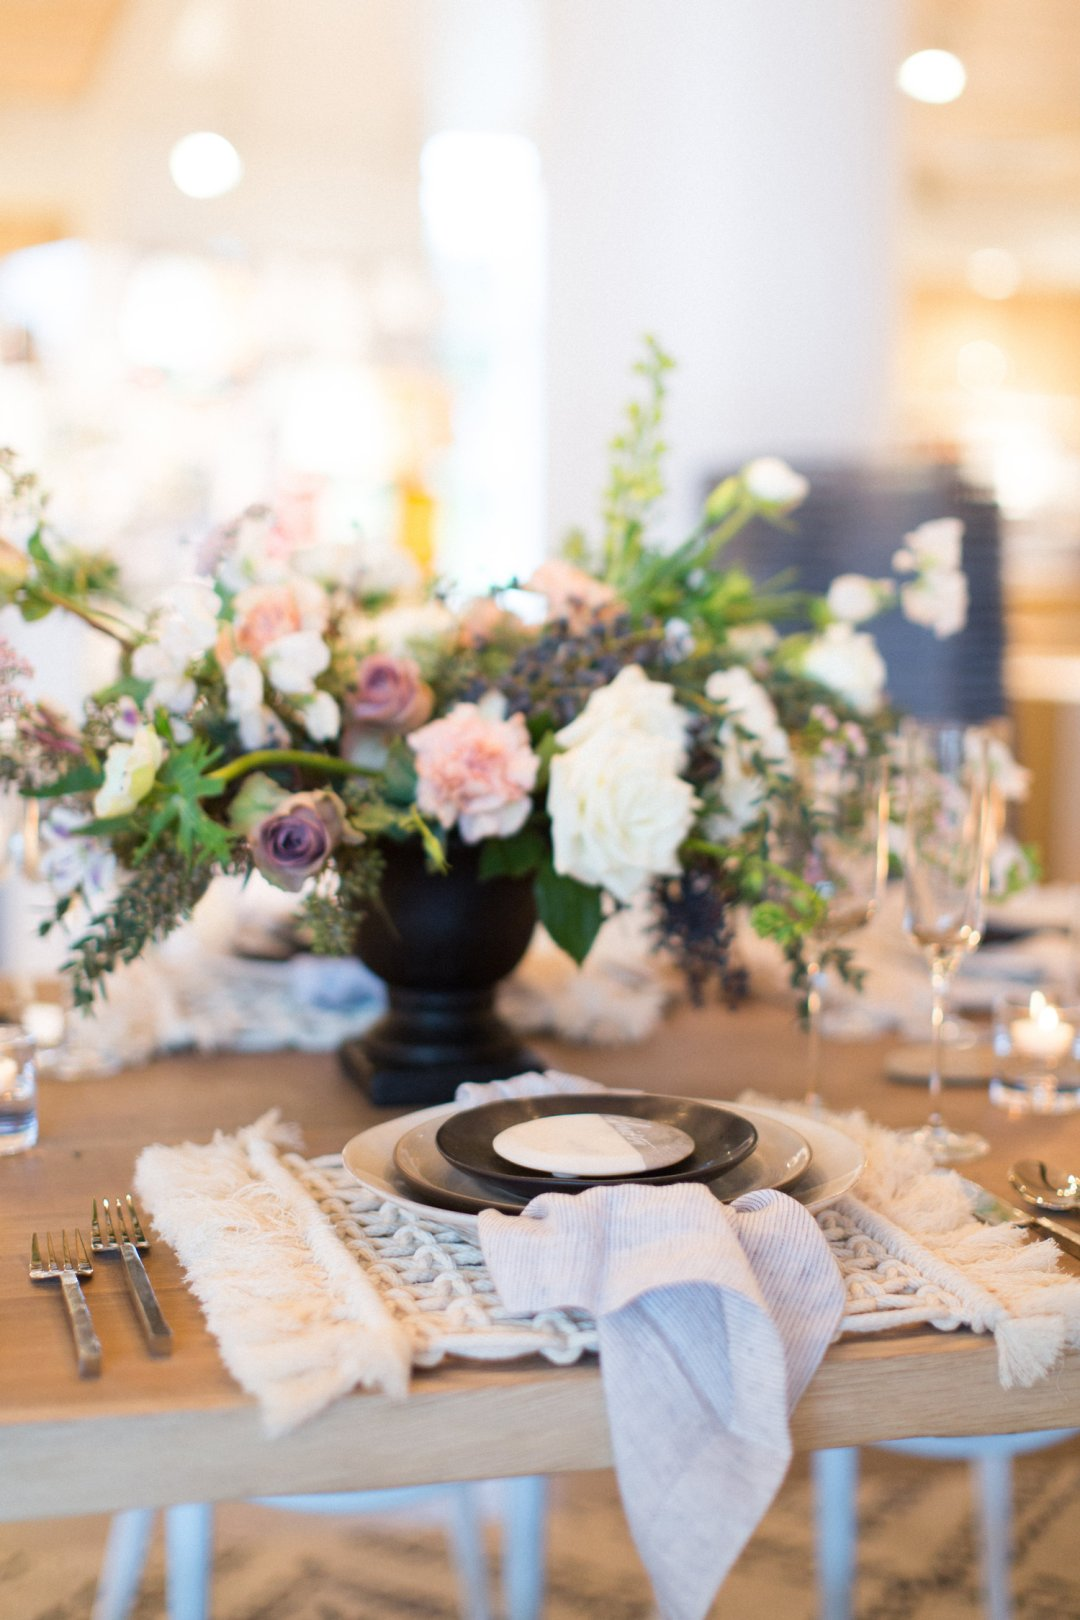 Boho wedding place setting with floral centerpiece